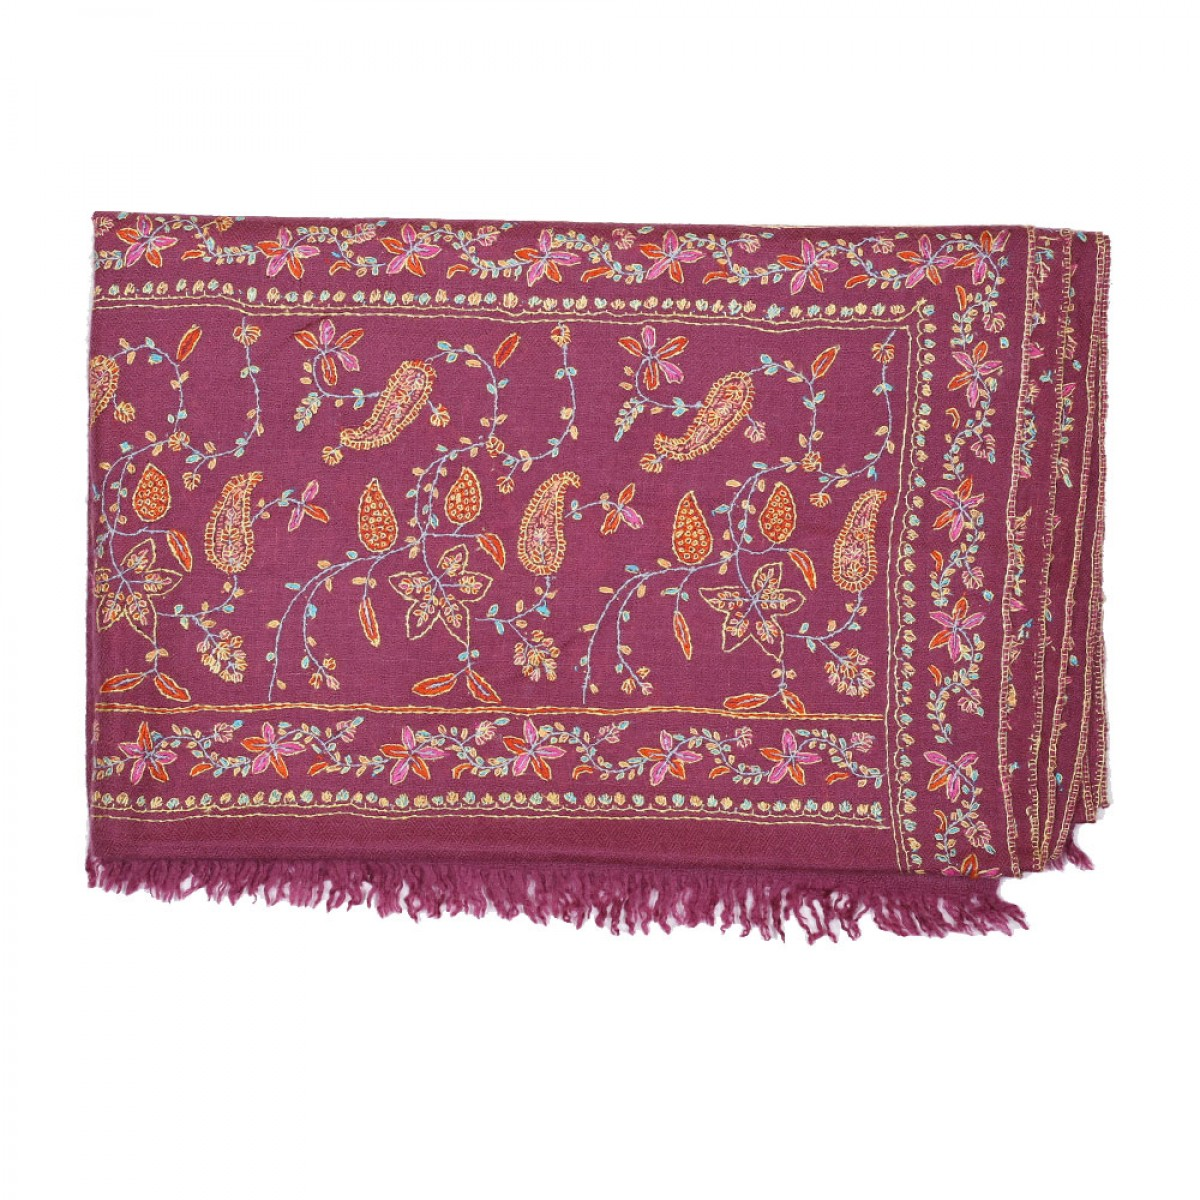 Embroidery Handloom Pashmina - Mulberry